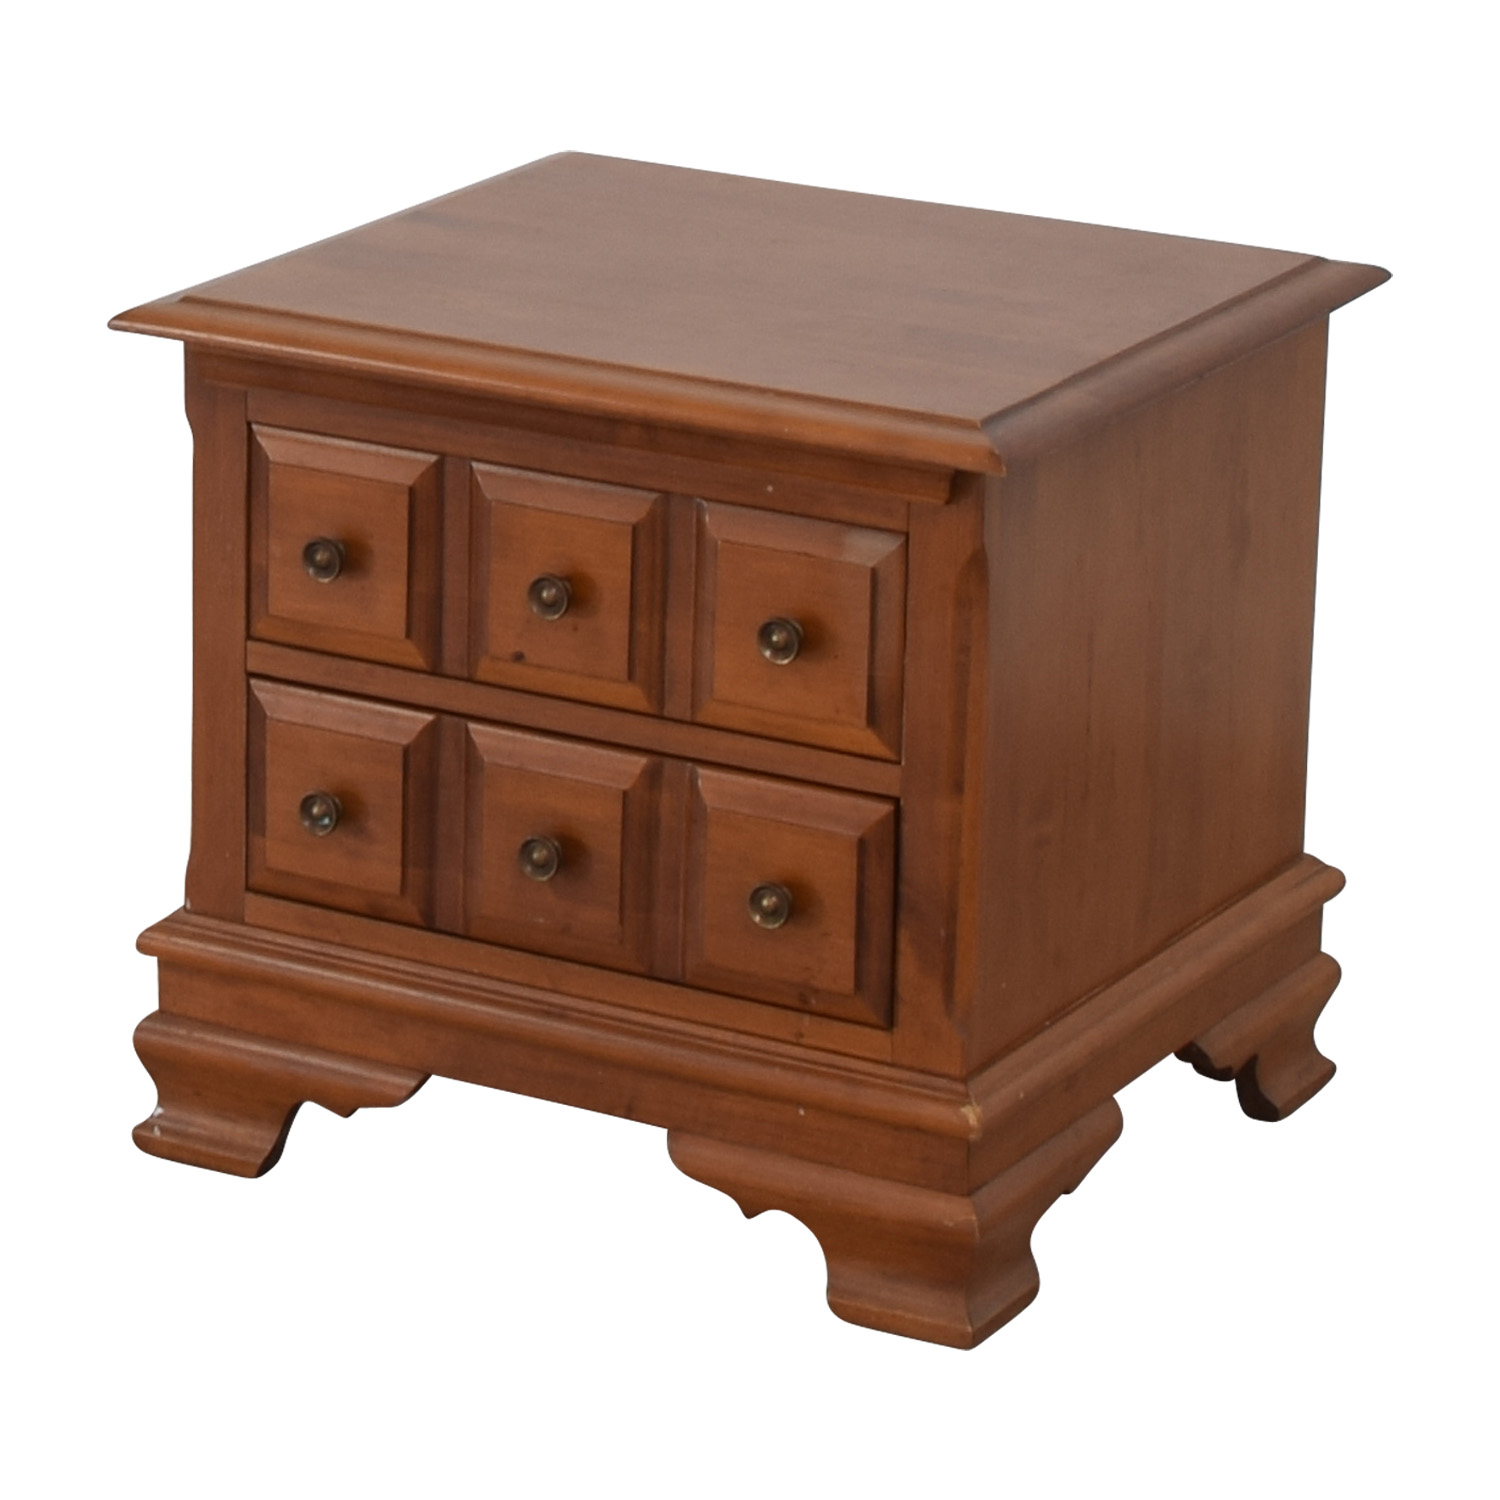 Vilas Vilas Two-Drawer Solid Oak Nightstand second hand